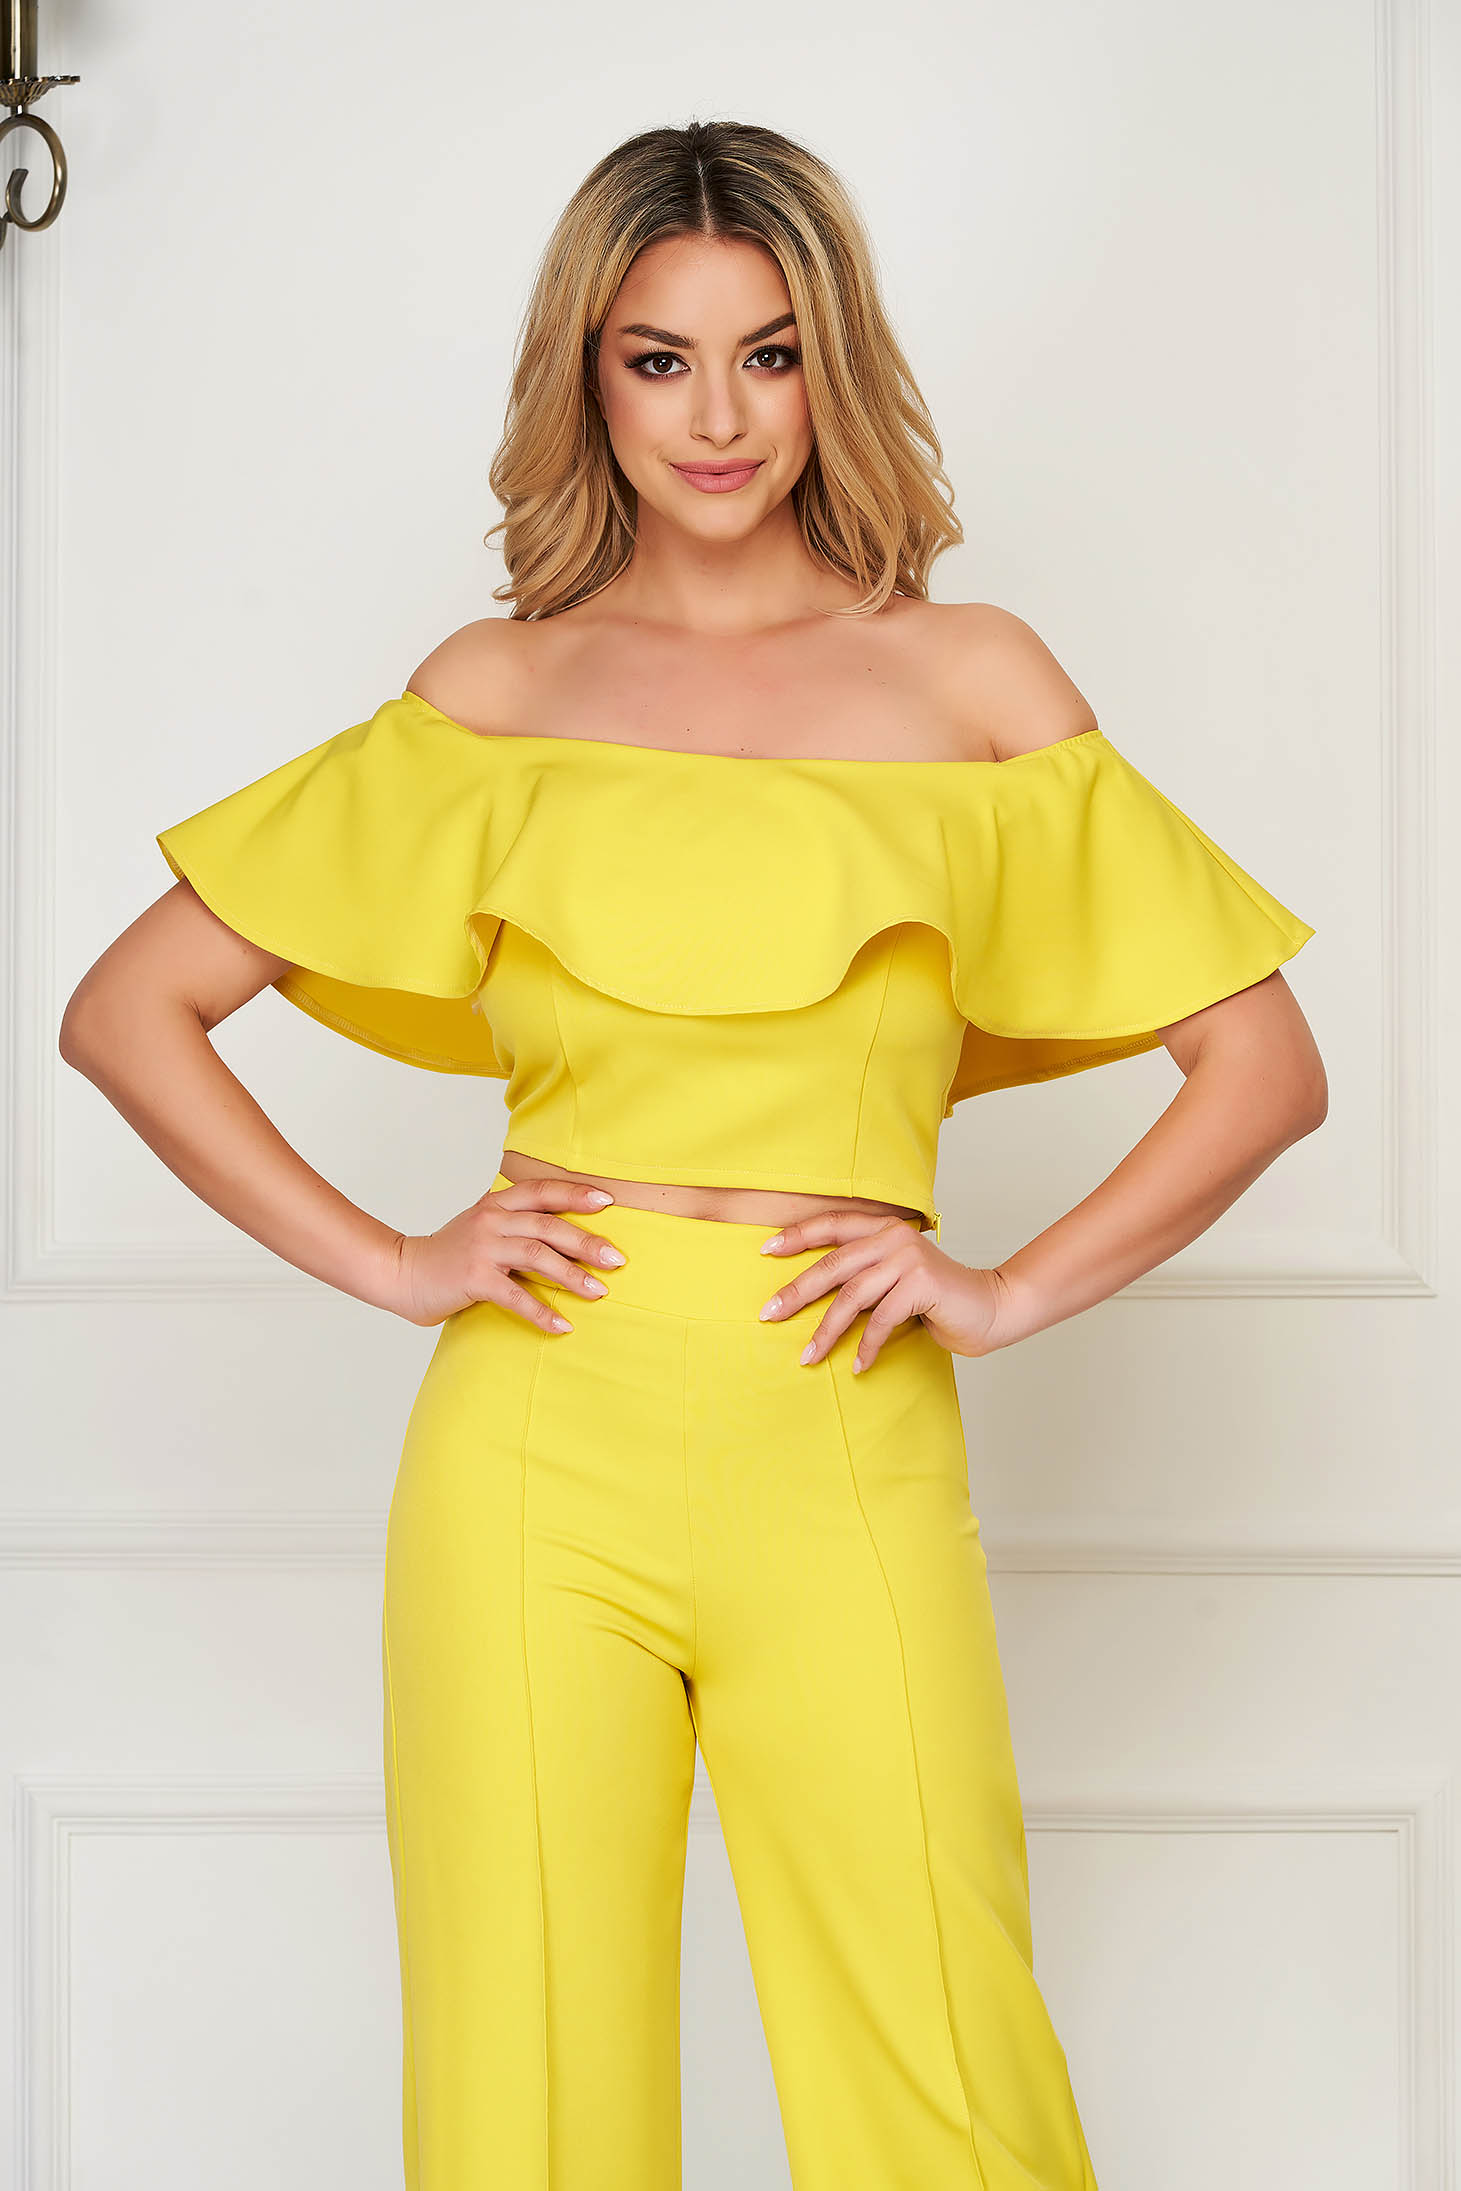 StarShinerS yellow top shirt elegant tented cloth short cut from elastic fabric naked shoulders